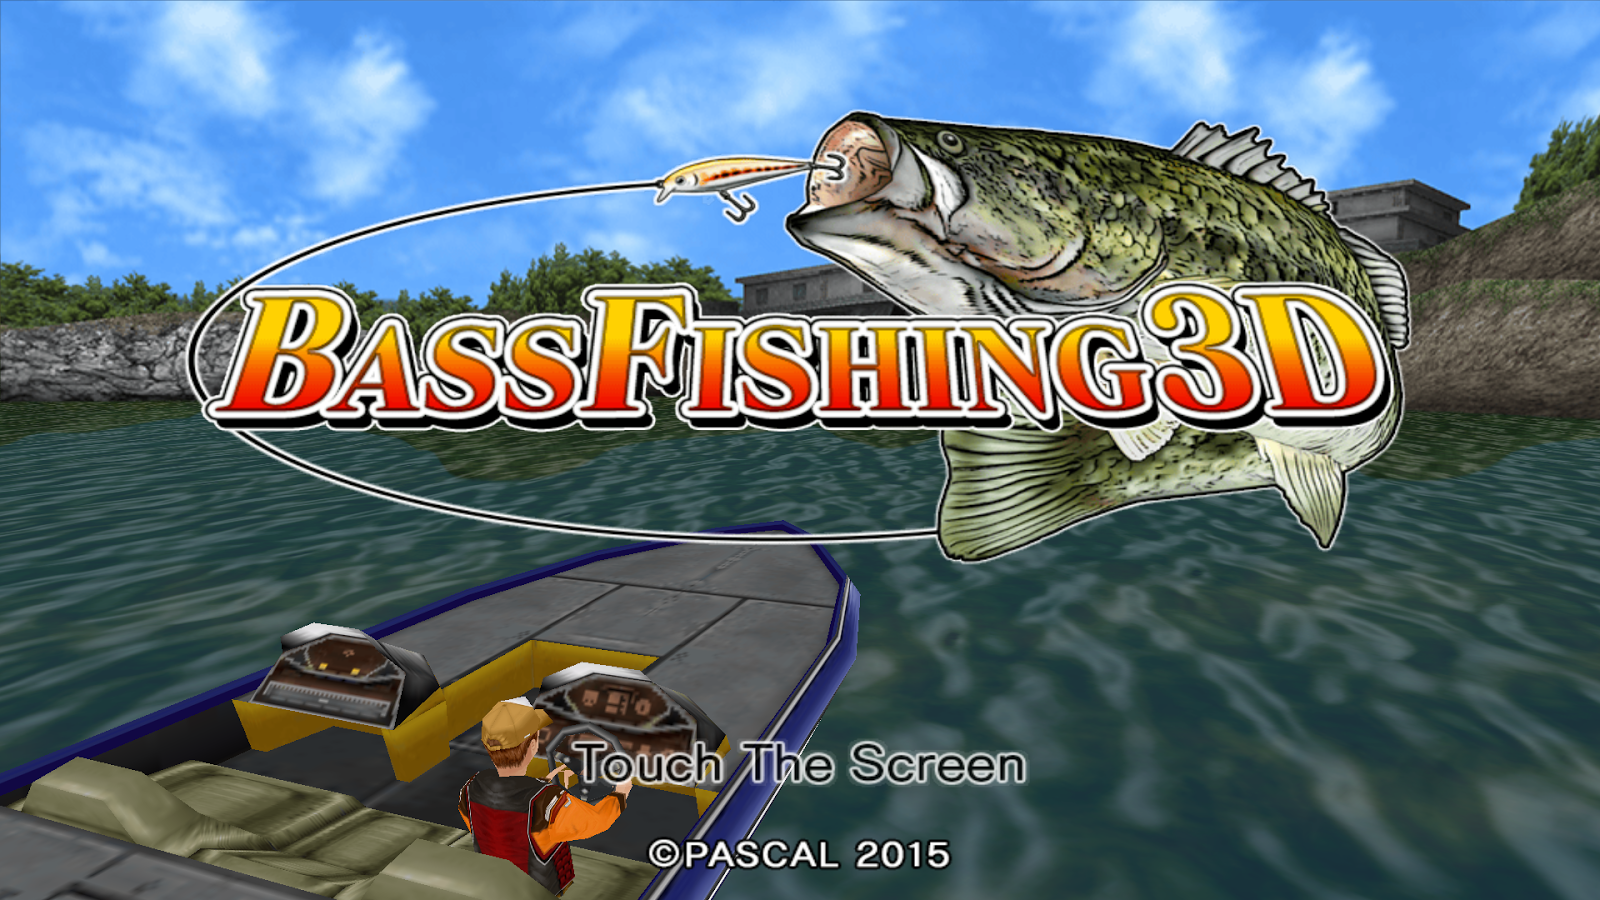 Bass fishing 3d free android apps on google play for Bass pro shop fishing games